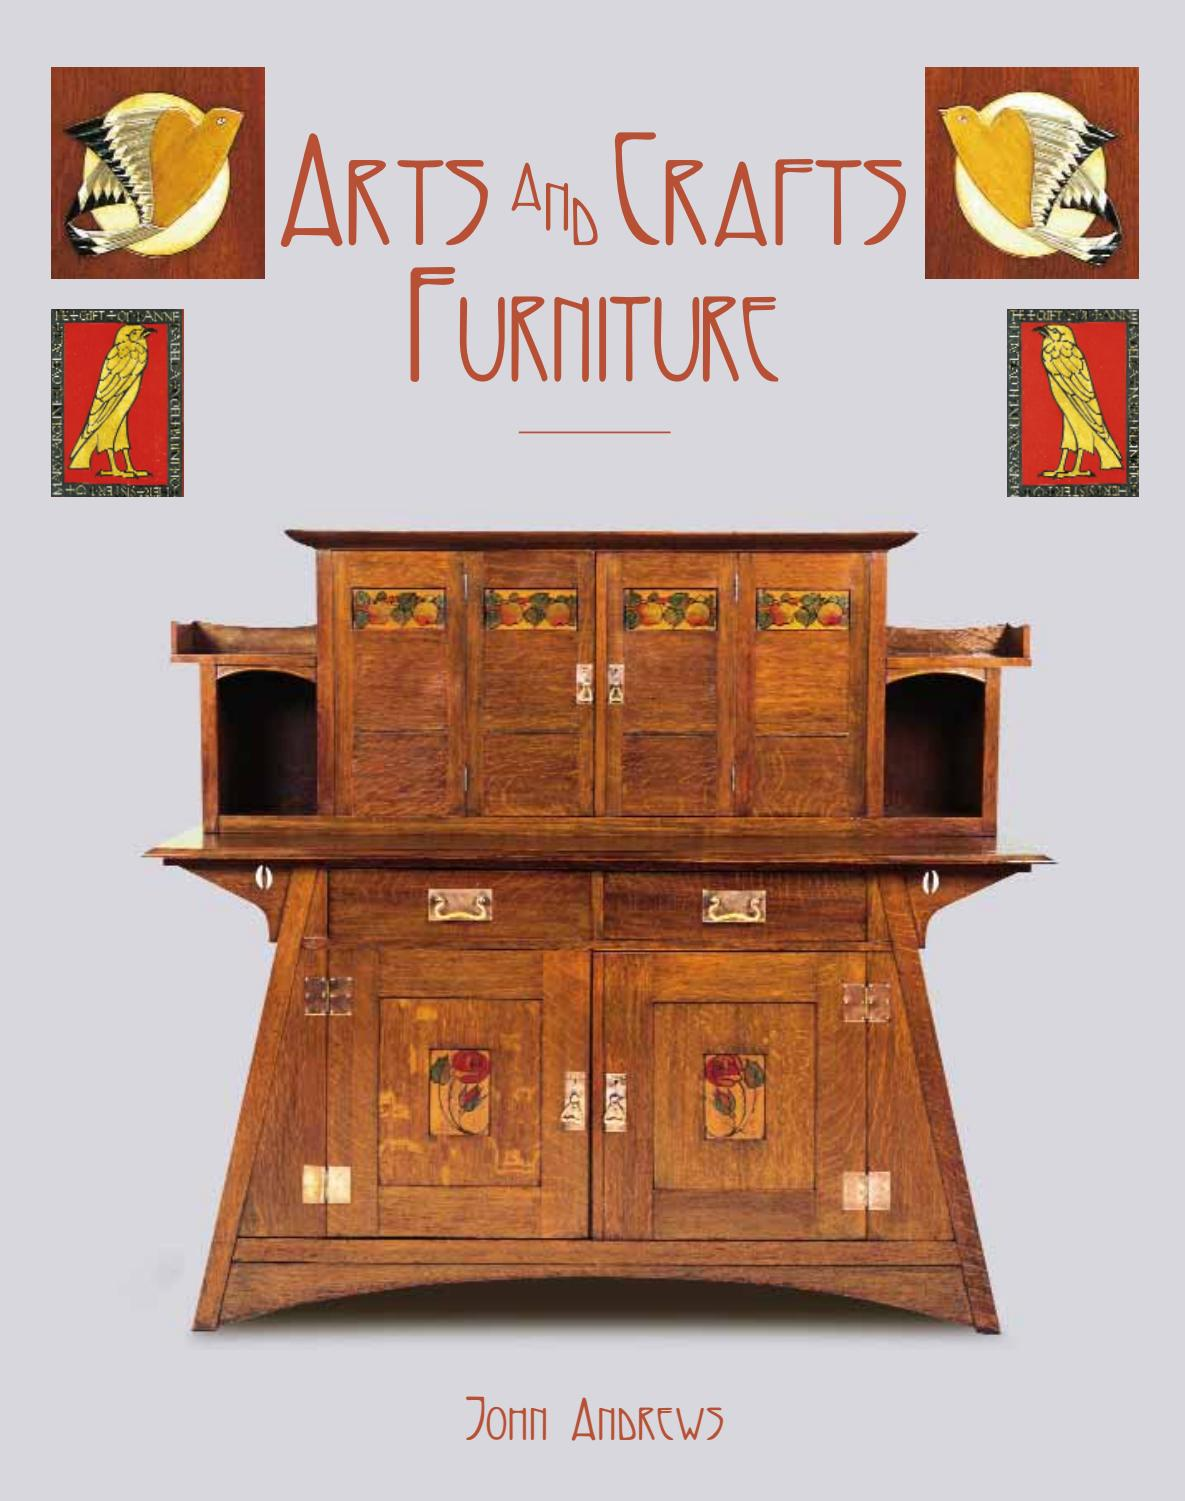 Arts And Crafts Furniture By Acc Art Books Issuu